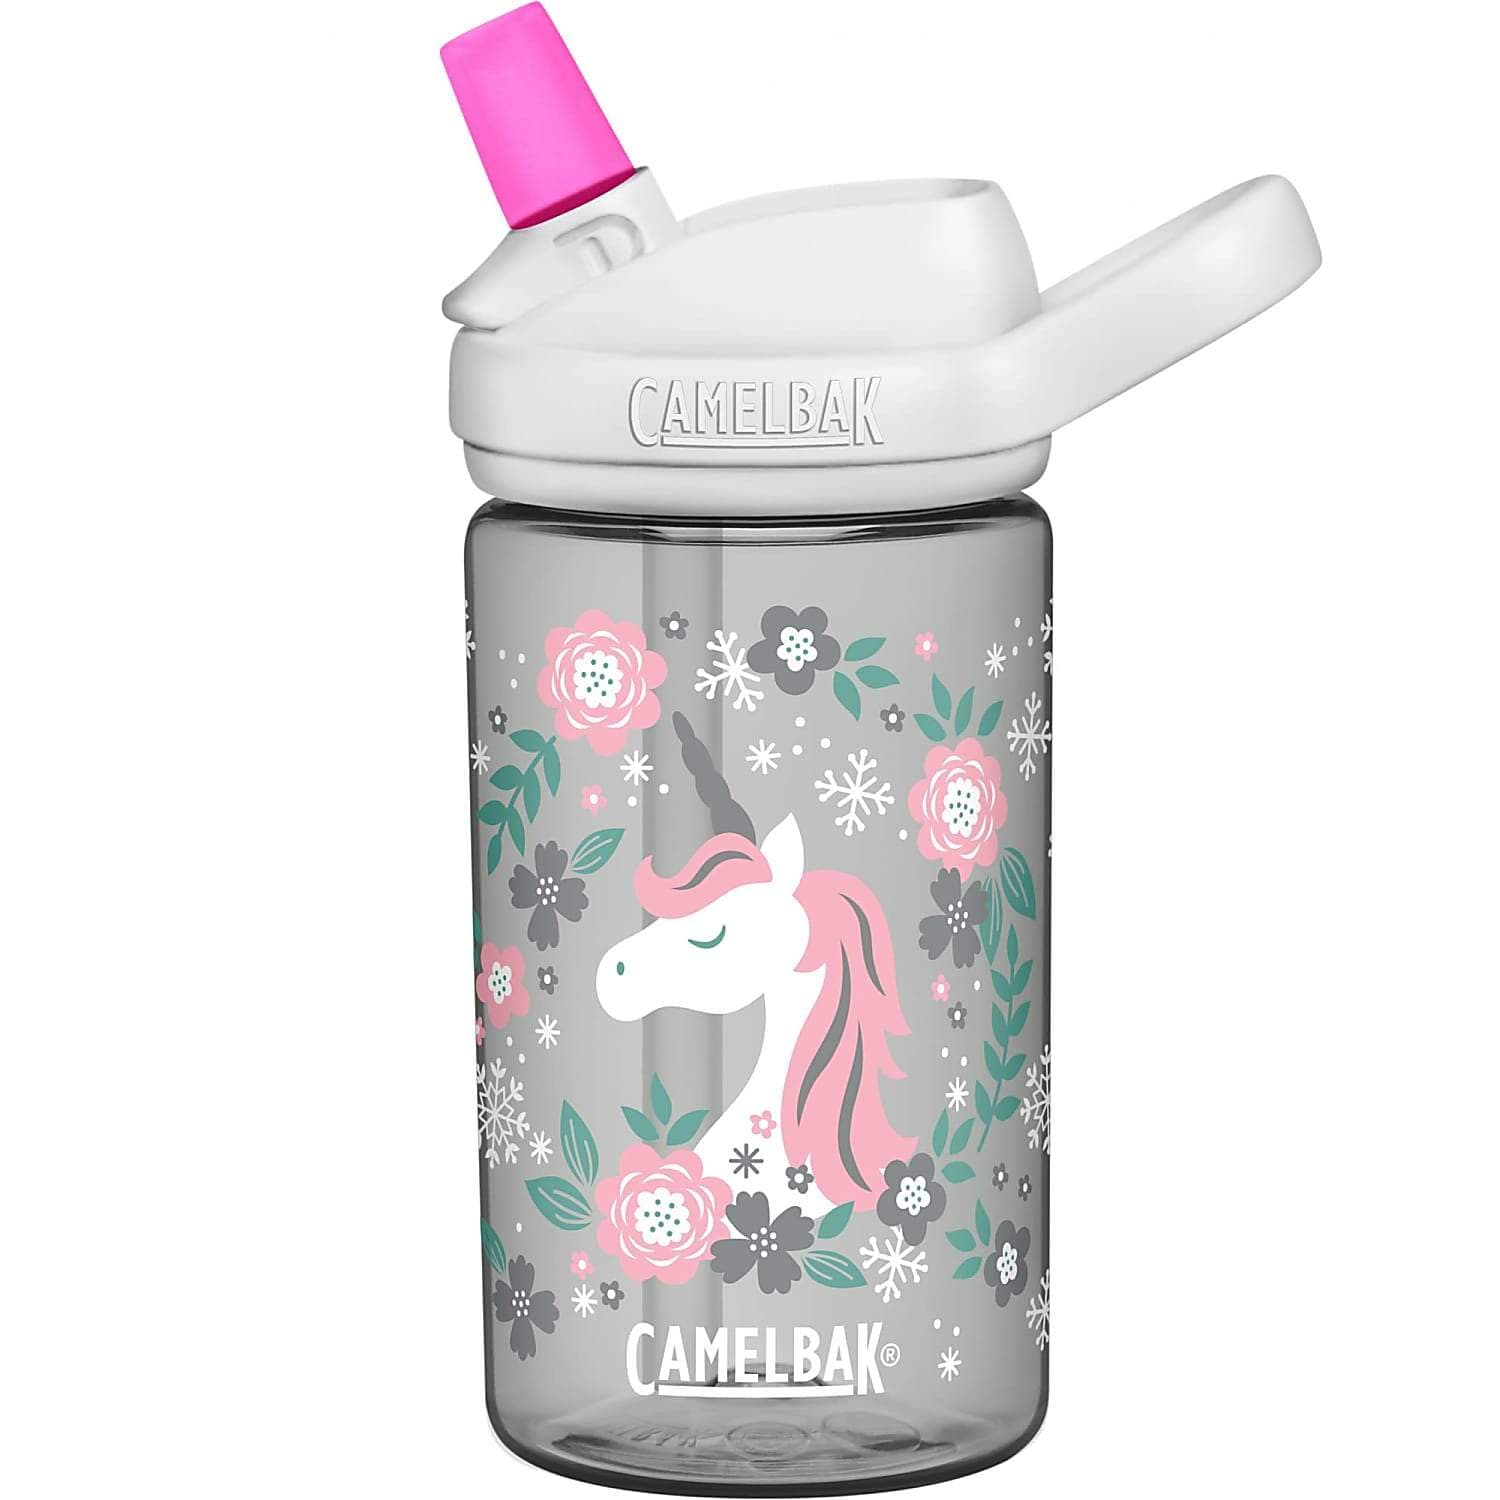 CamelBak Eddy+ Kids Bottle - 0.4L- Unicorn Wreath